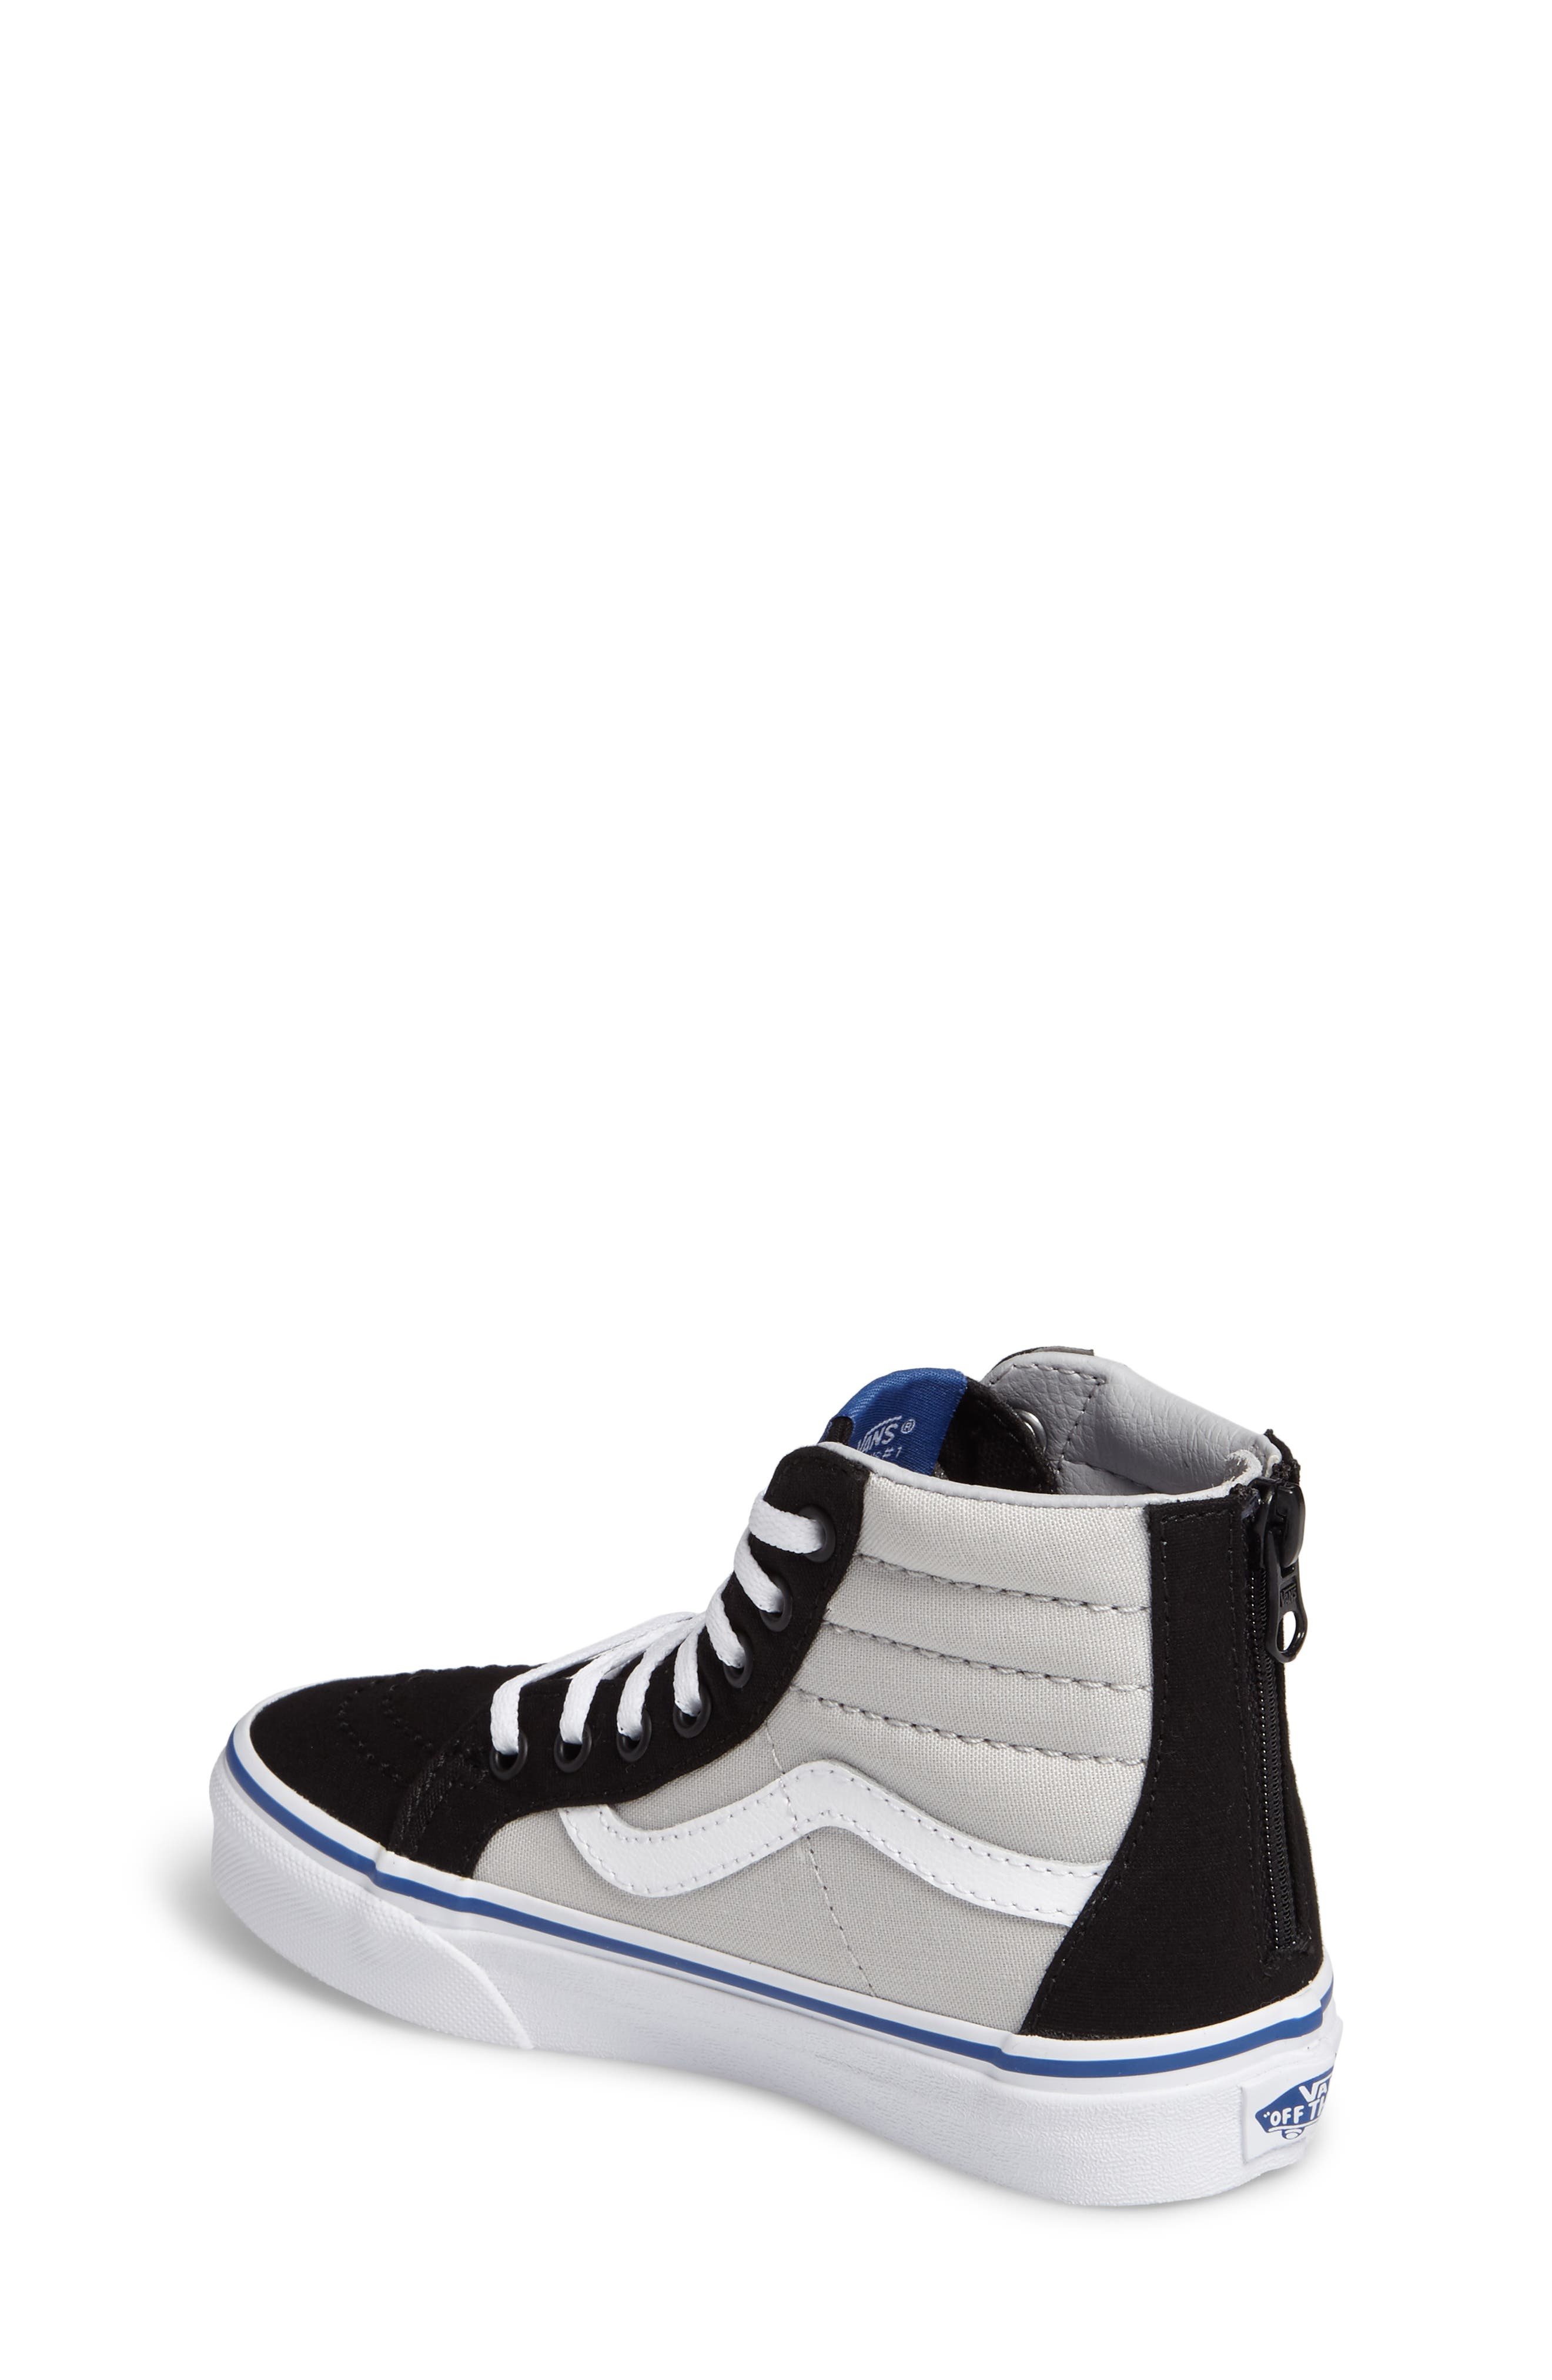 Alternate Image 2  - Vans SK8-Hi Zip Sneaker (Baby, Walker, Toddler, Little Kid & Big Kid)